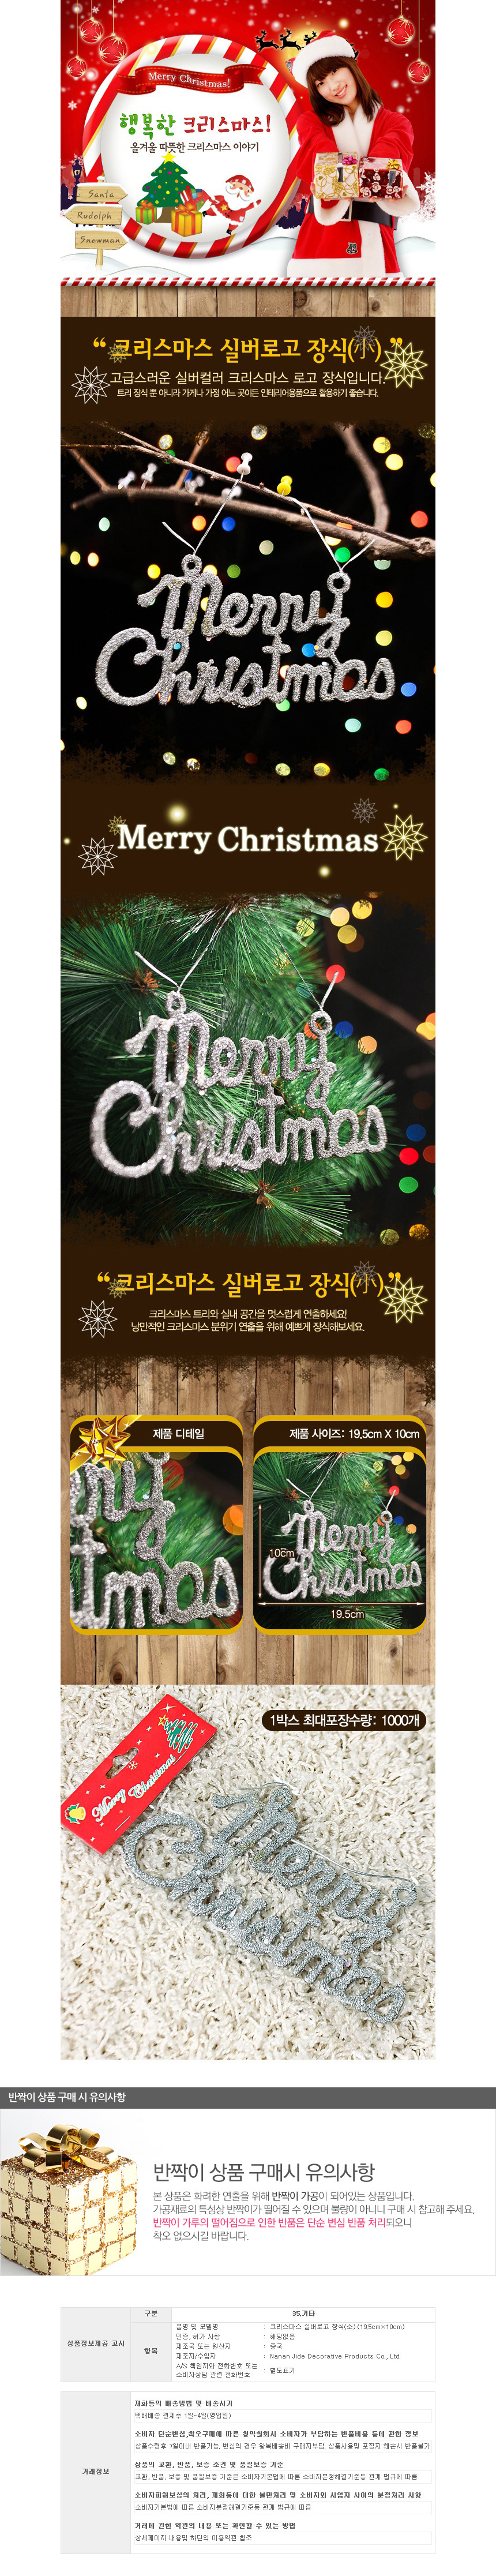 [ WINEQOK ] Christmas Goods / Decorate Christmas silver logo. ×